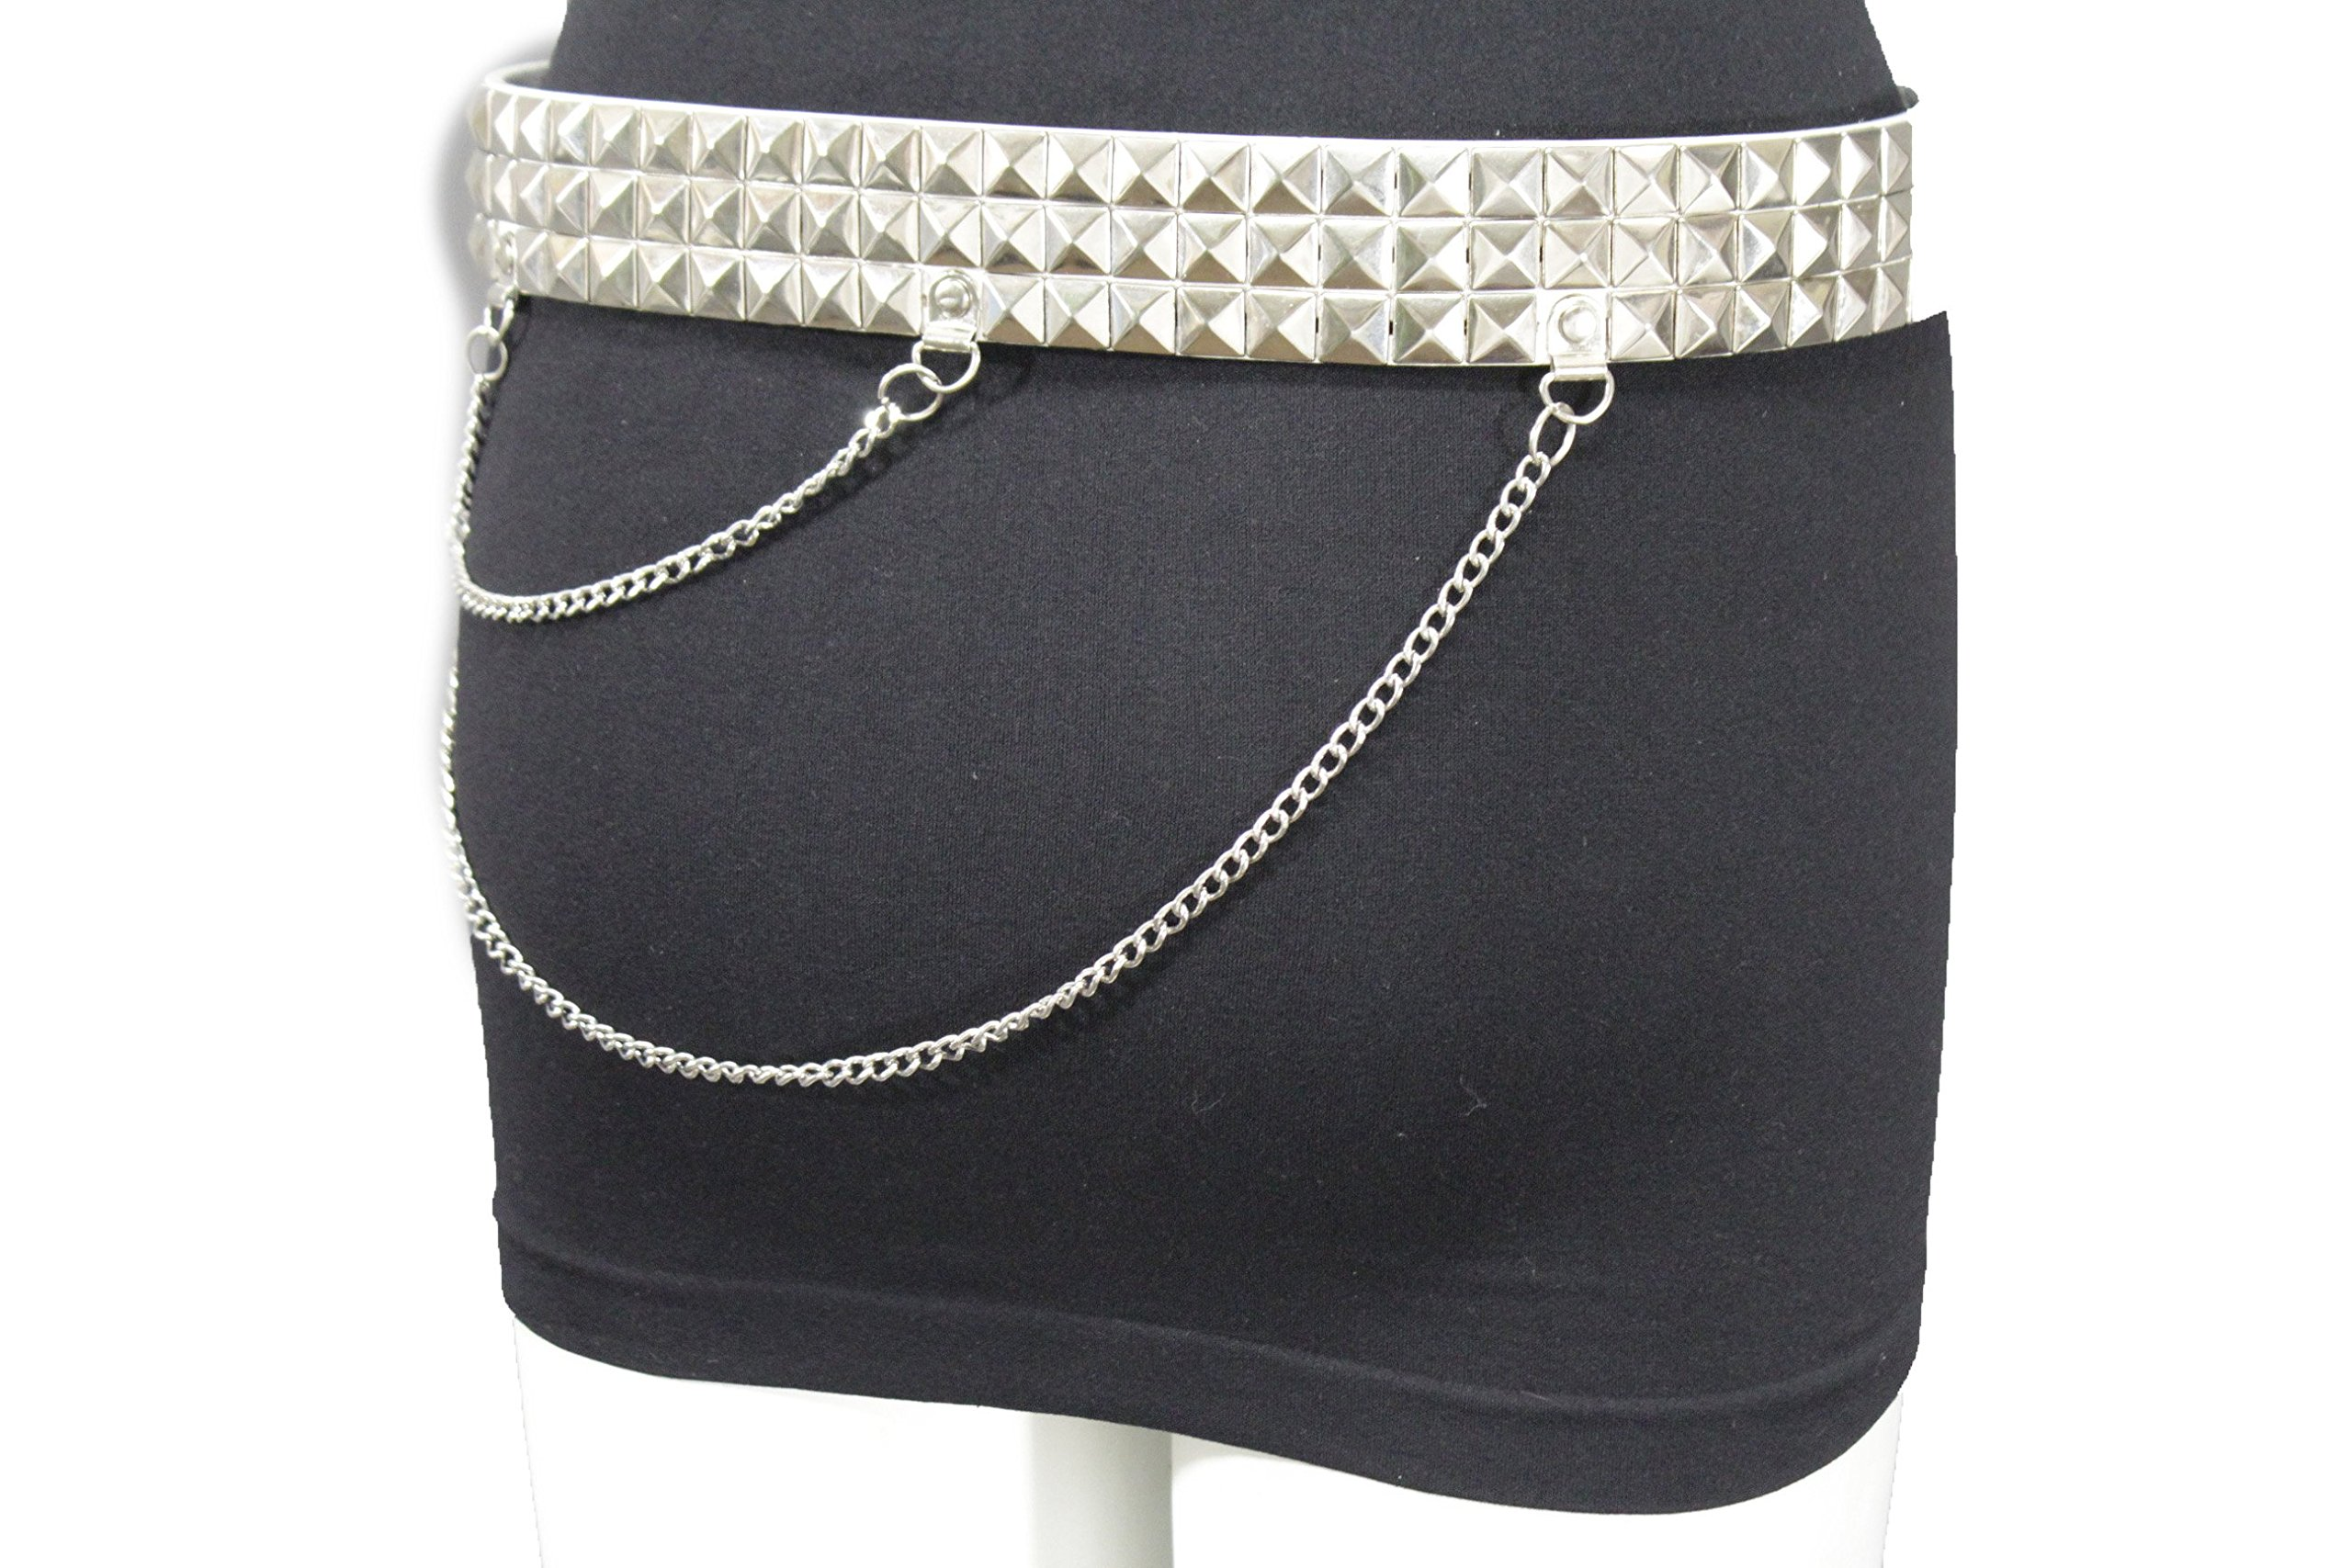 TFJ Women's Rocker Fashion Belt Silver Metal Chain Pyramid Stud Buckle S M L XL Black (White - XL 41''-46'')